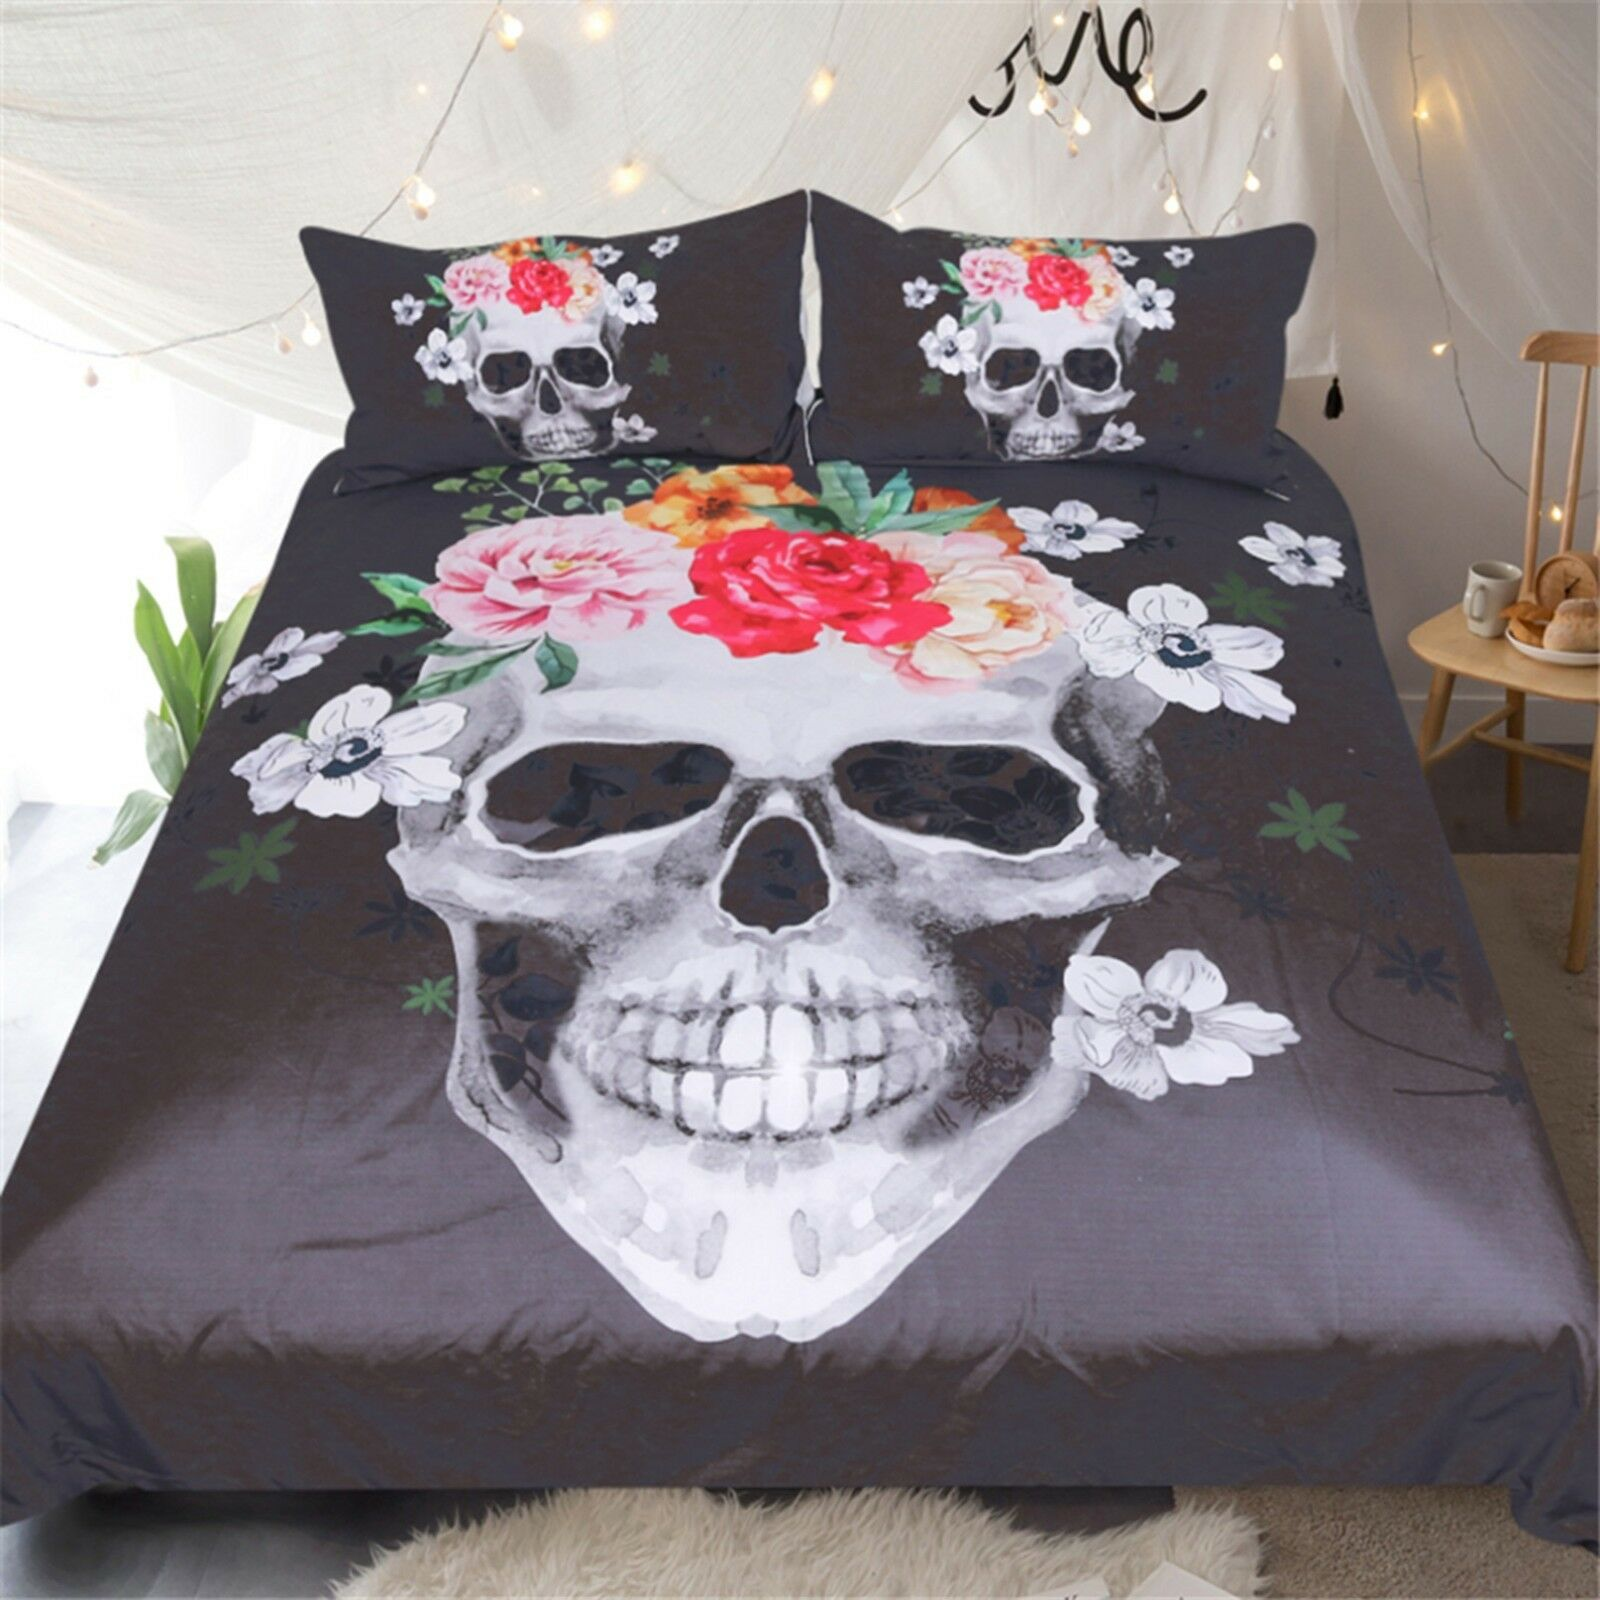 3D Skeleton Flower 482 Bett Pillowcases Quilt Duvet Startseite Set Single Königin CA